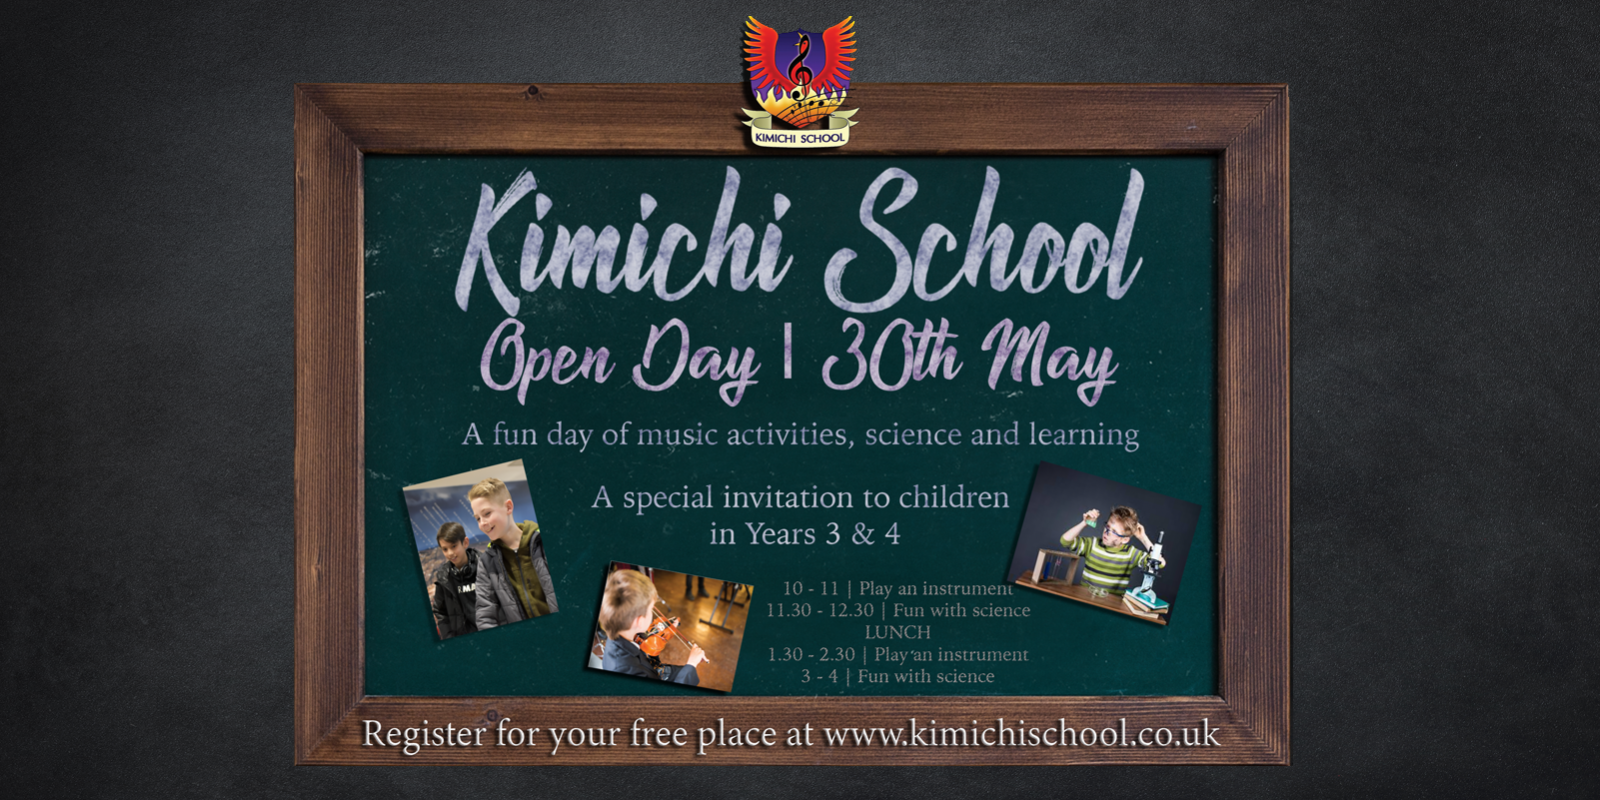 WELCOME TO KIMICHI SCHOOL